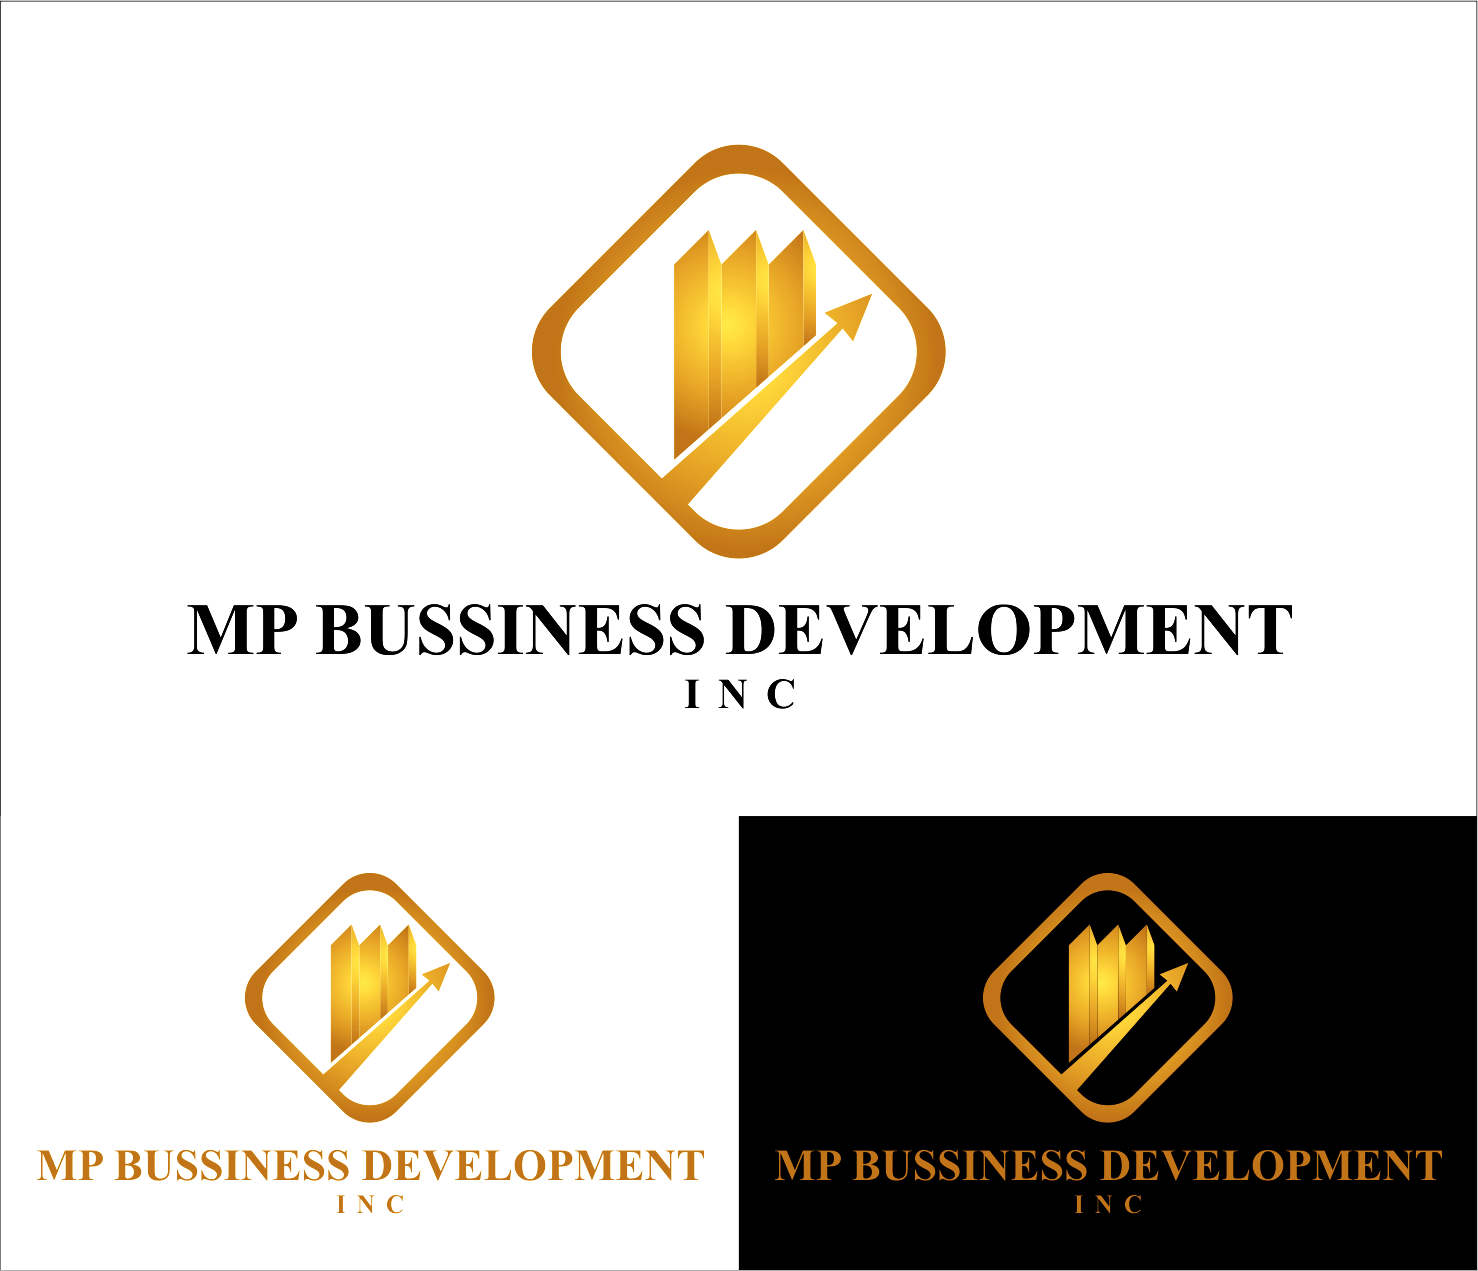 Logo Design by Armada Jamaluddin - Entry No. 222 in the Logo Design Contest MP Business Development Inc. Logo Design.